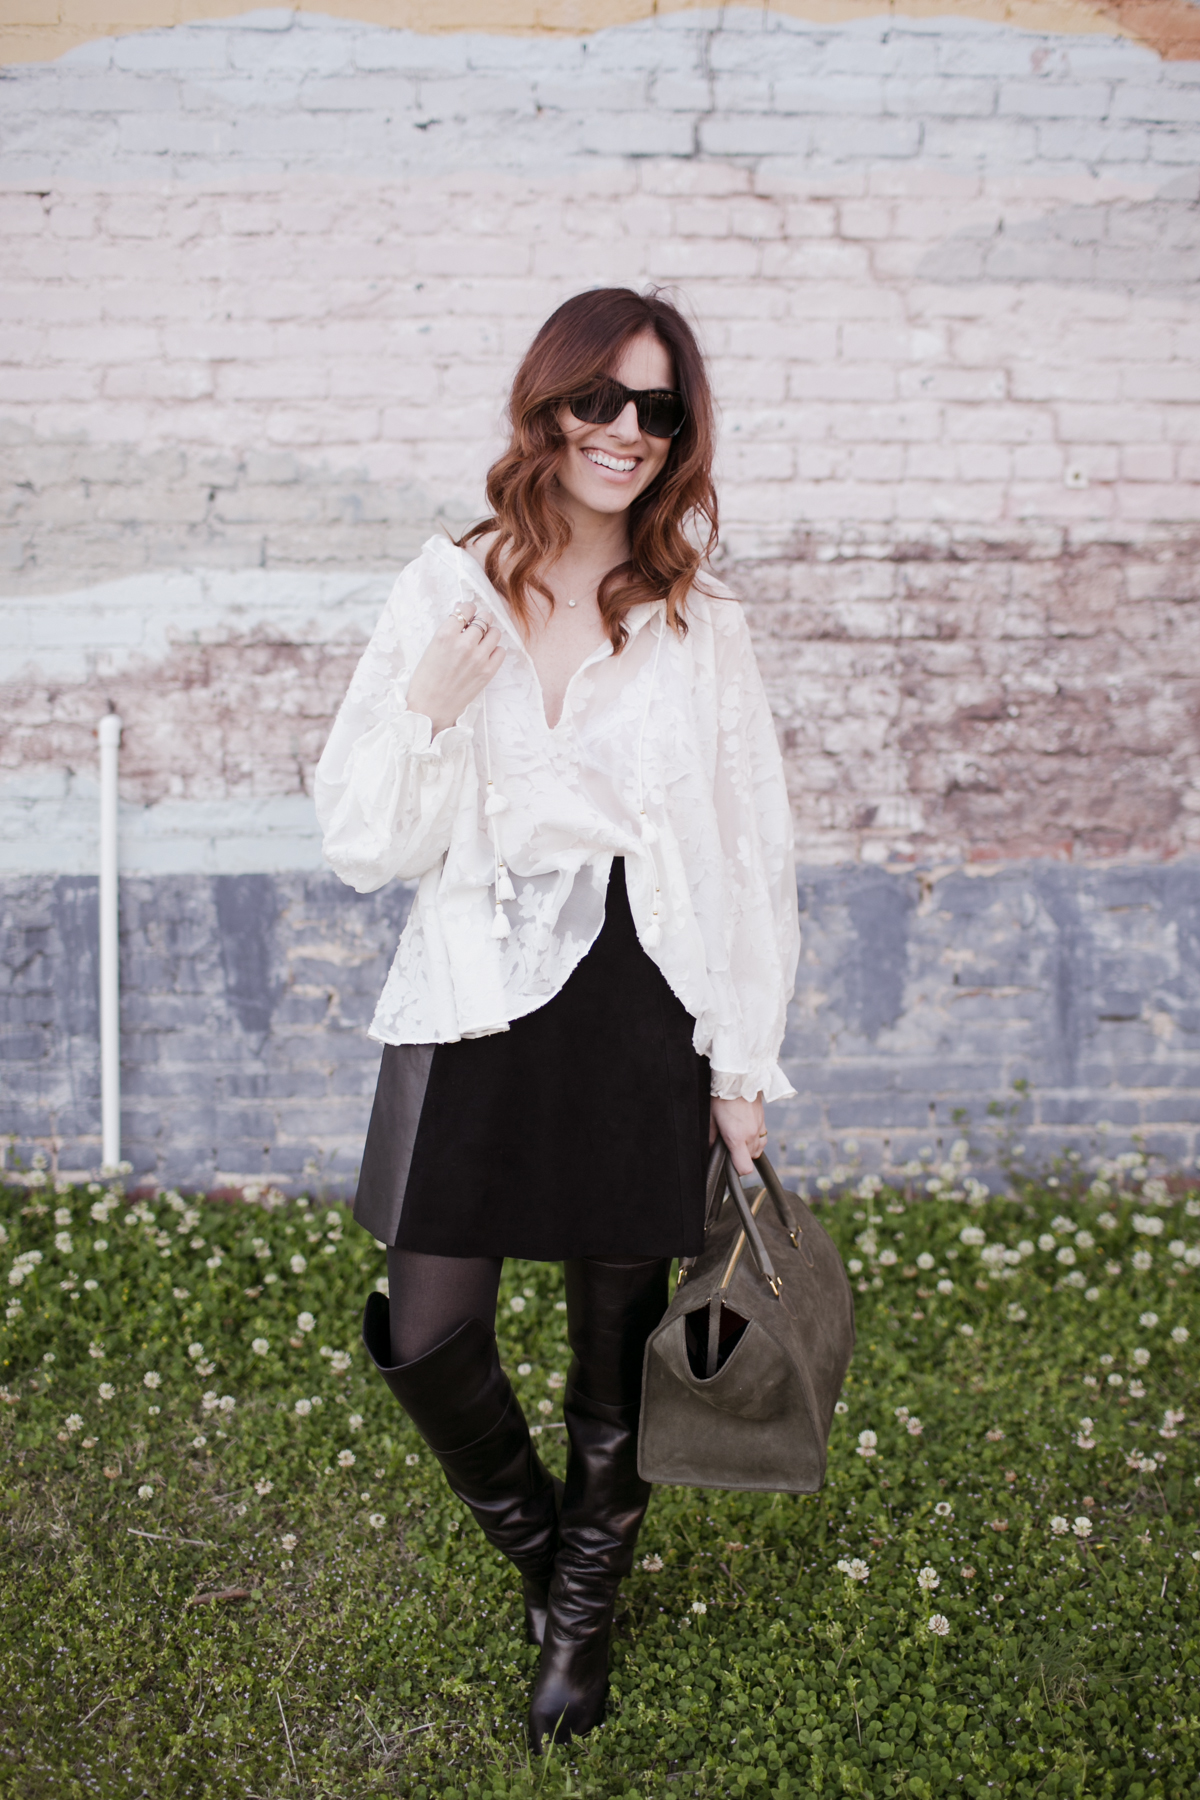 Eldridge Edit_Anna_E_Cottrell_Tulip_Louise_Fashion_Blogger_White_Rachel_Zoe_Blouse_Suede_and_Leather_Veda_Mini_Skirt_Ralph_Lauren_Over_the_knee_boot_spring_summer_trends_2016_salt_sunglasses_vintage_2.jpg